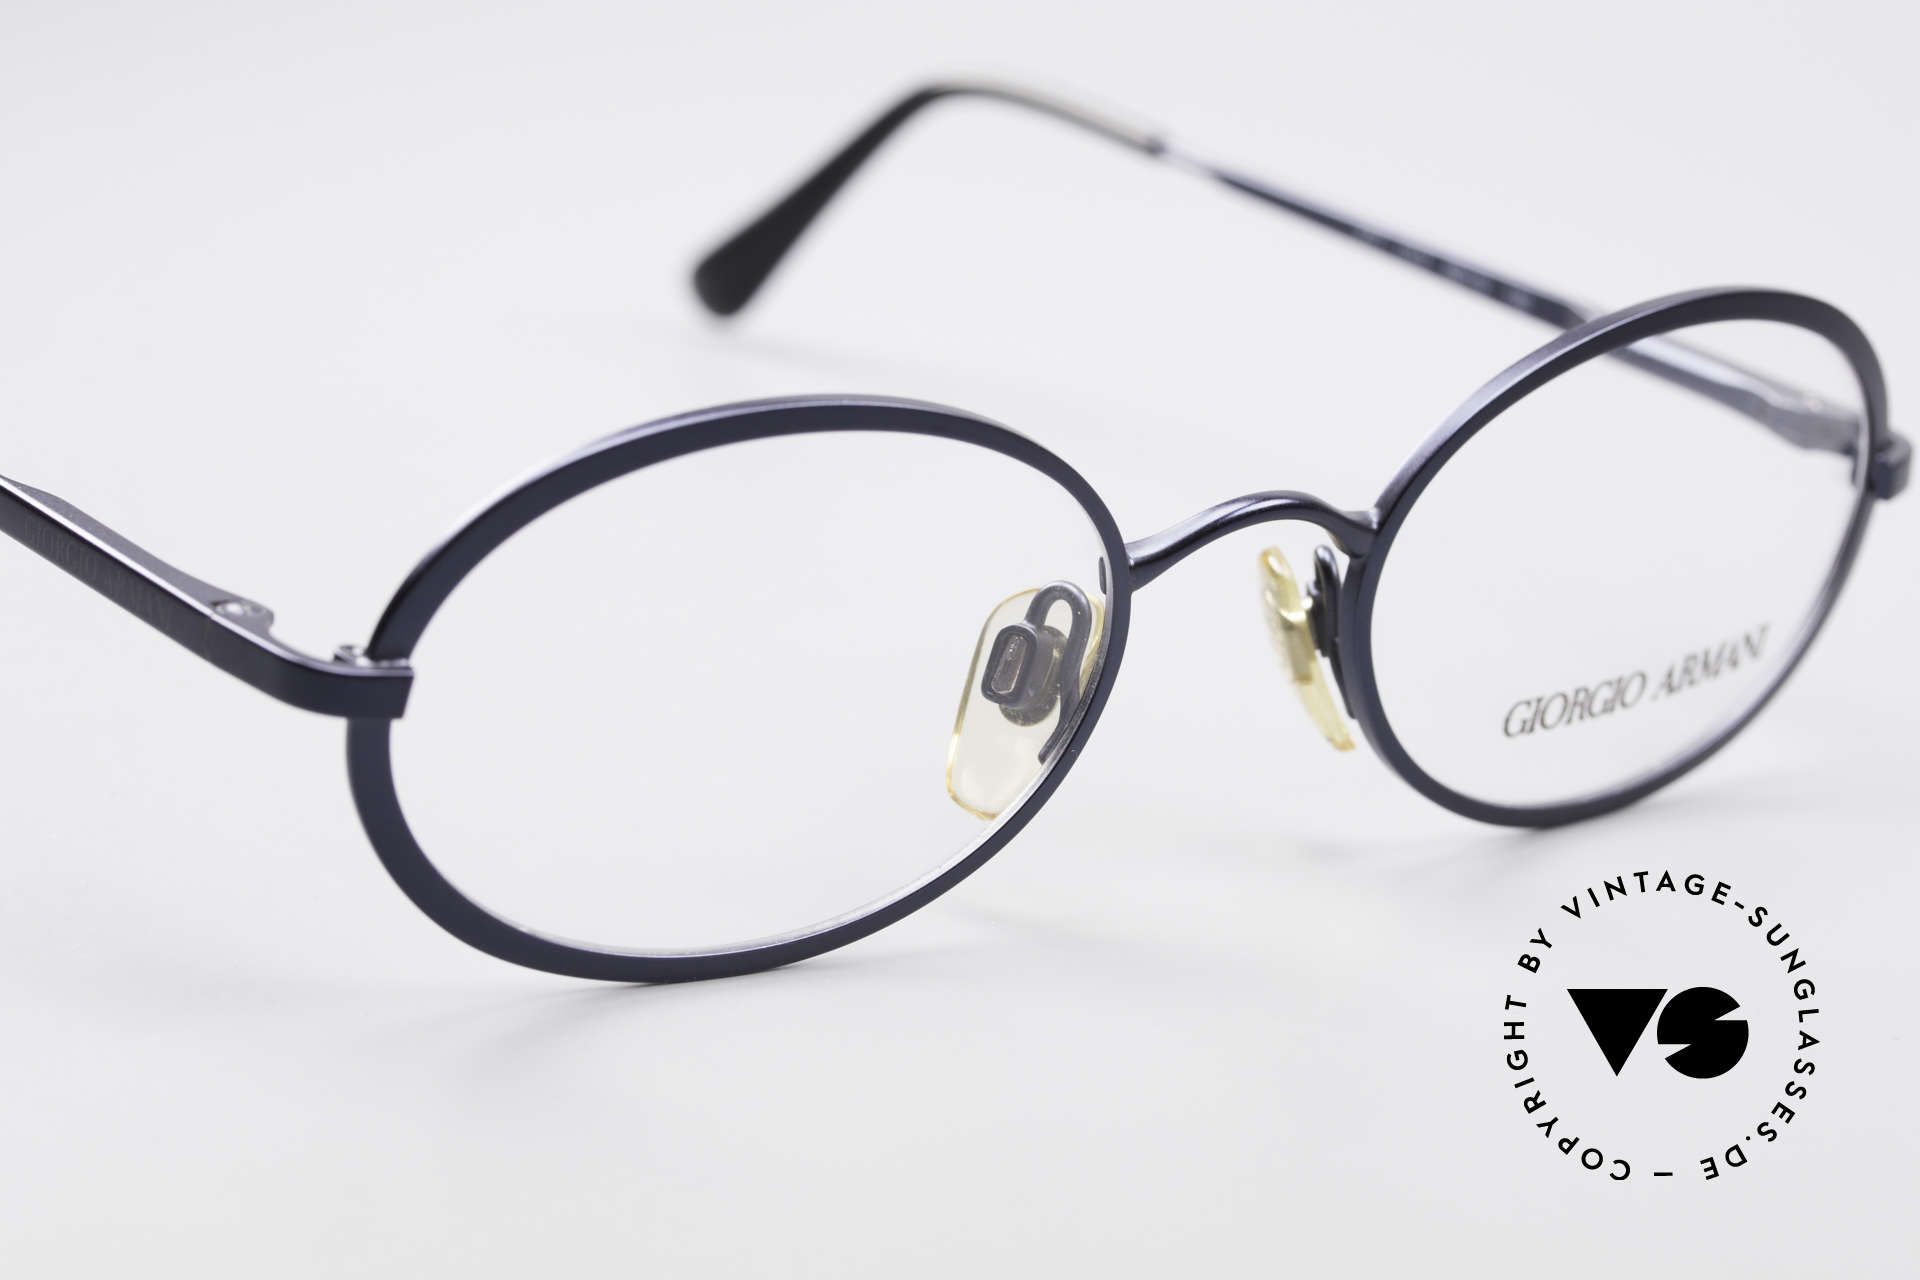 Giorgio Armani 277 90's Oval Vintage Eyeglasses, NO RETRO EYEWEAR, but a 25 years old Original, Made for Men and Women